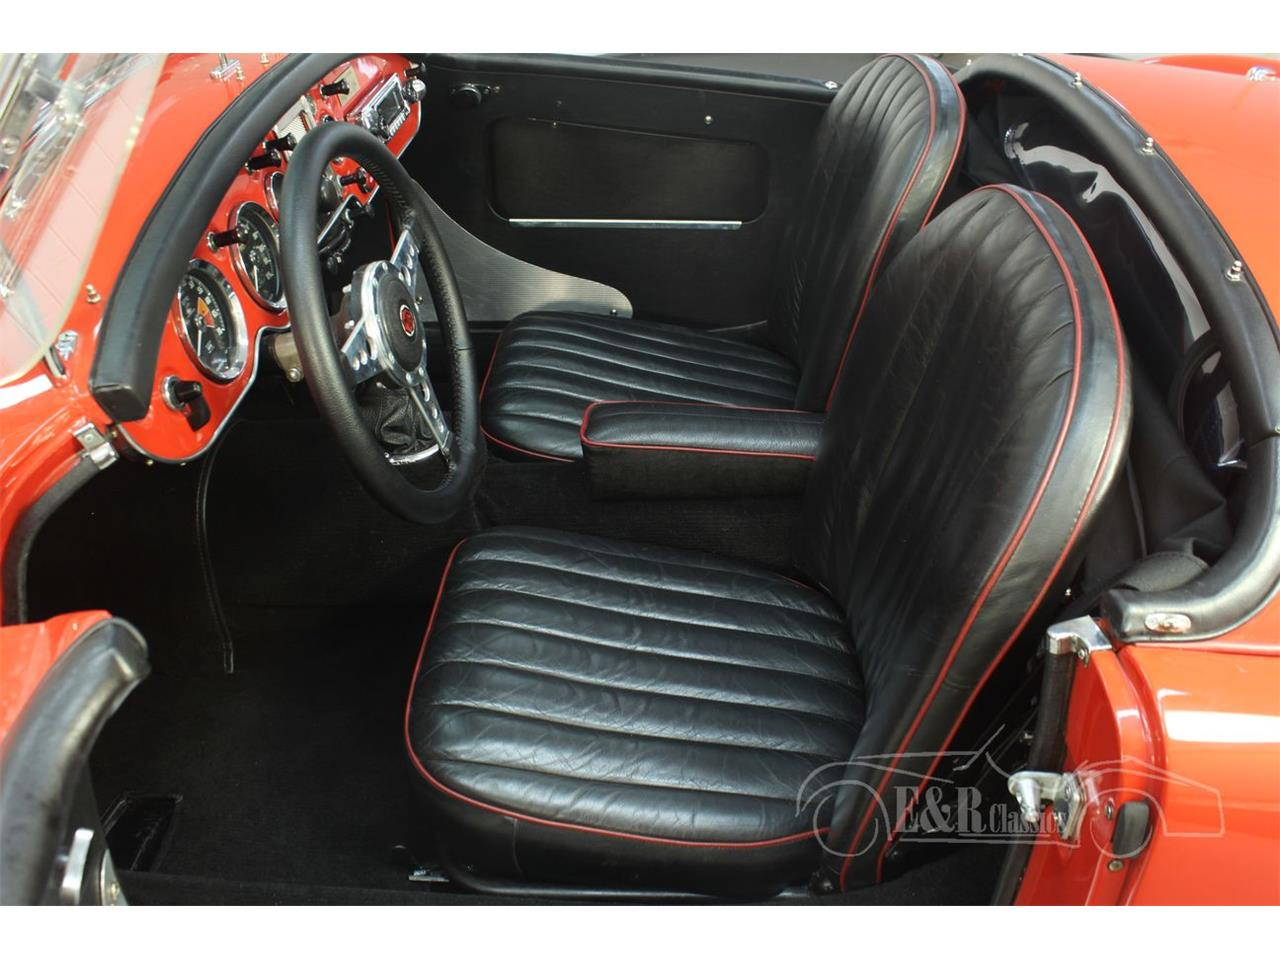 Large Picture of '62 MG MGA Offered by E & R Classics - QKGO